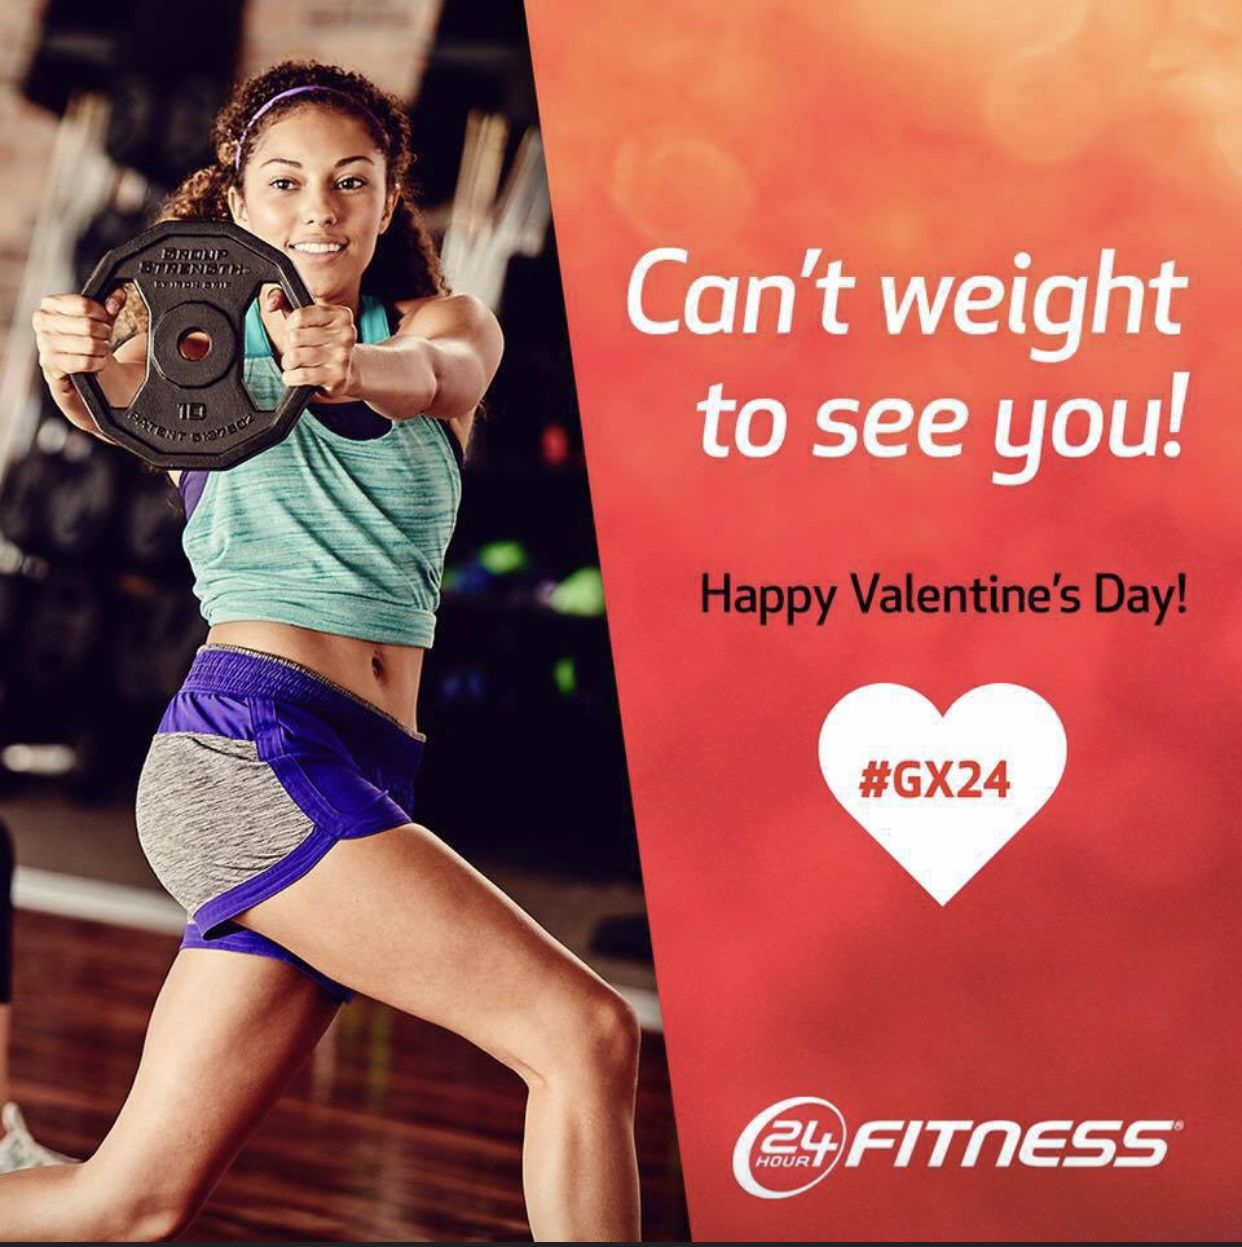 Pin By Fabby Mcginn On Gym Memes Valentines Day Memes Gym Memes Happy Valentine